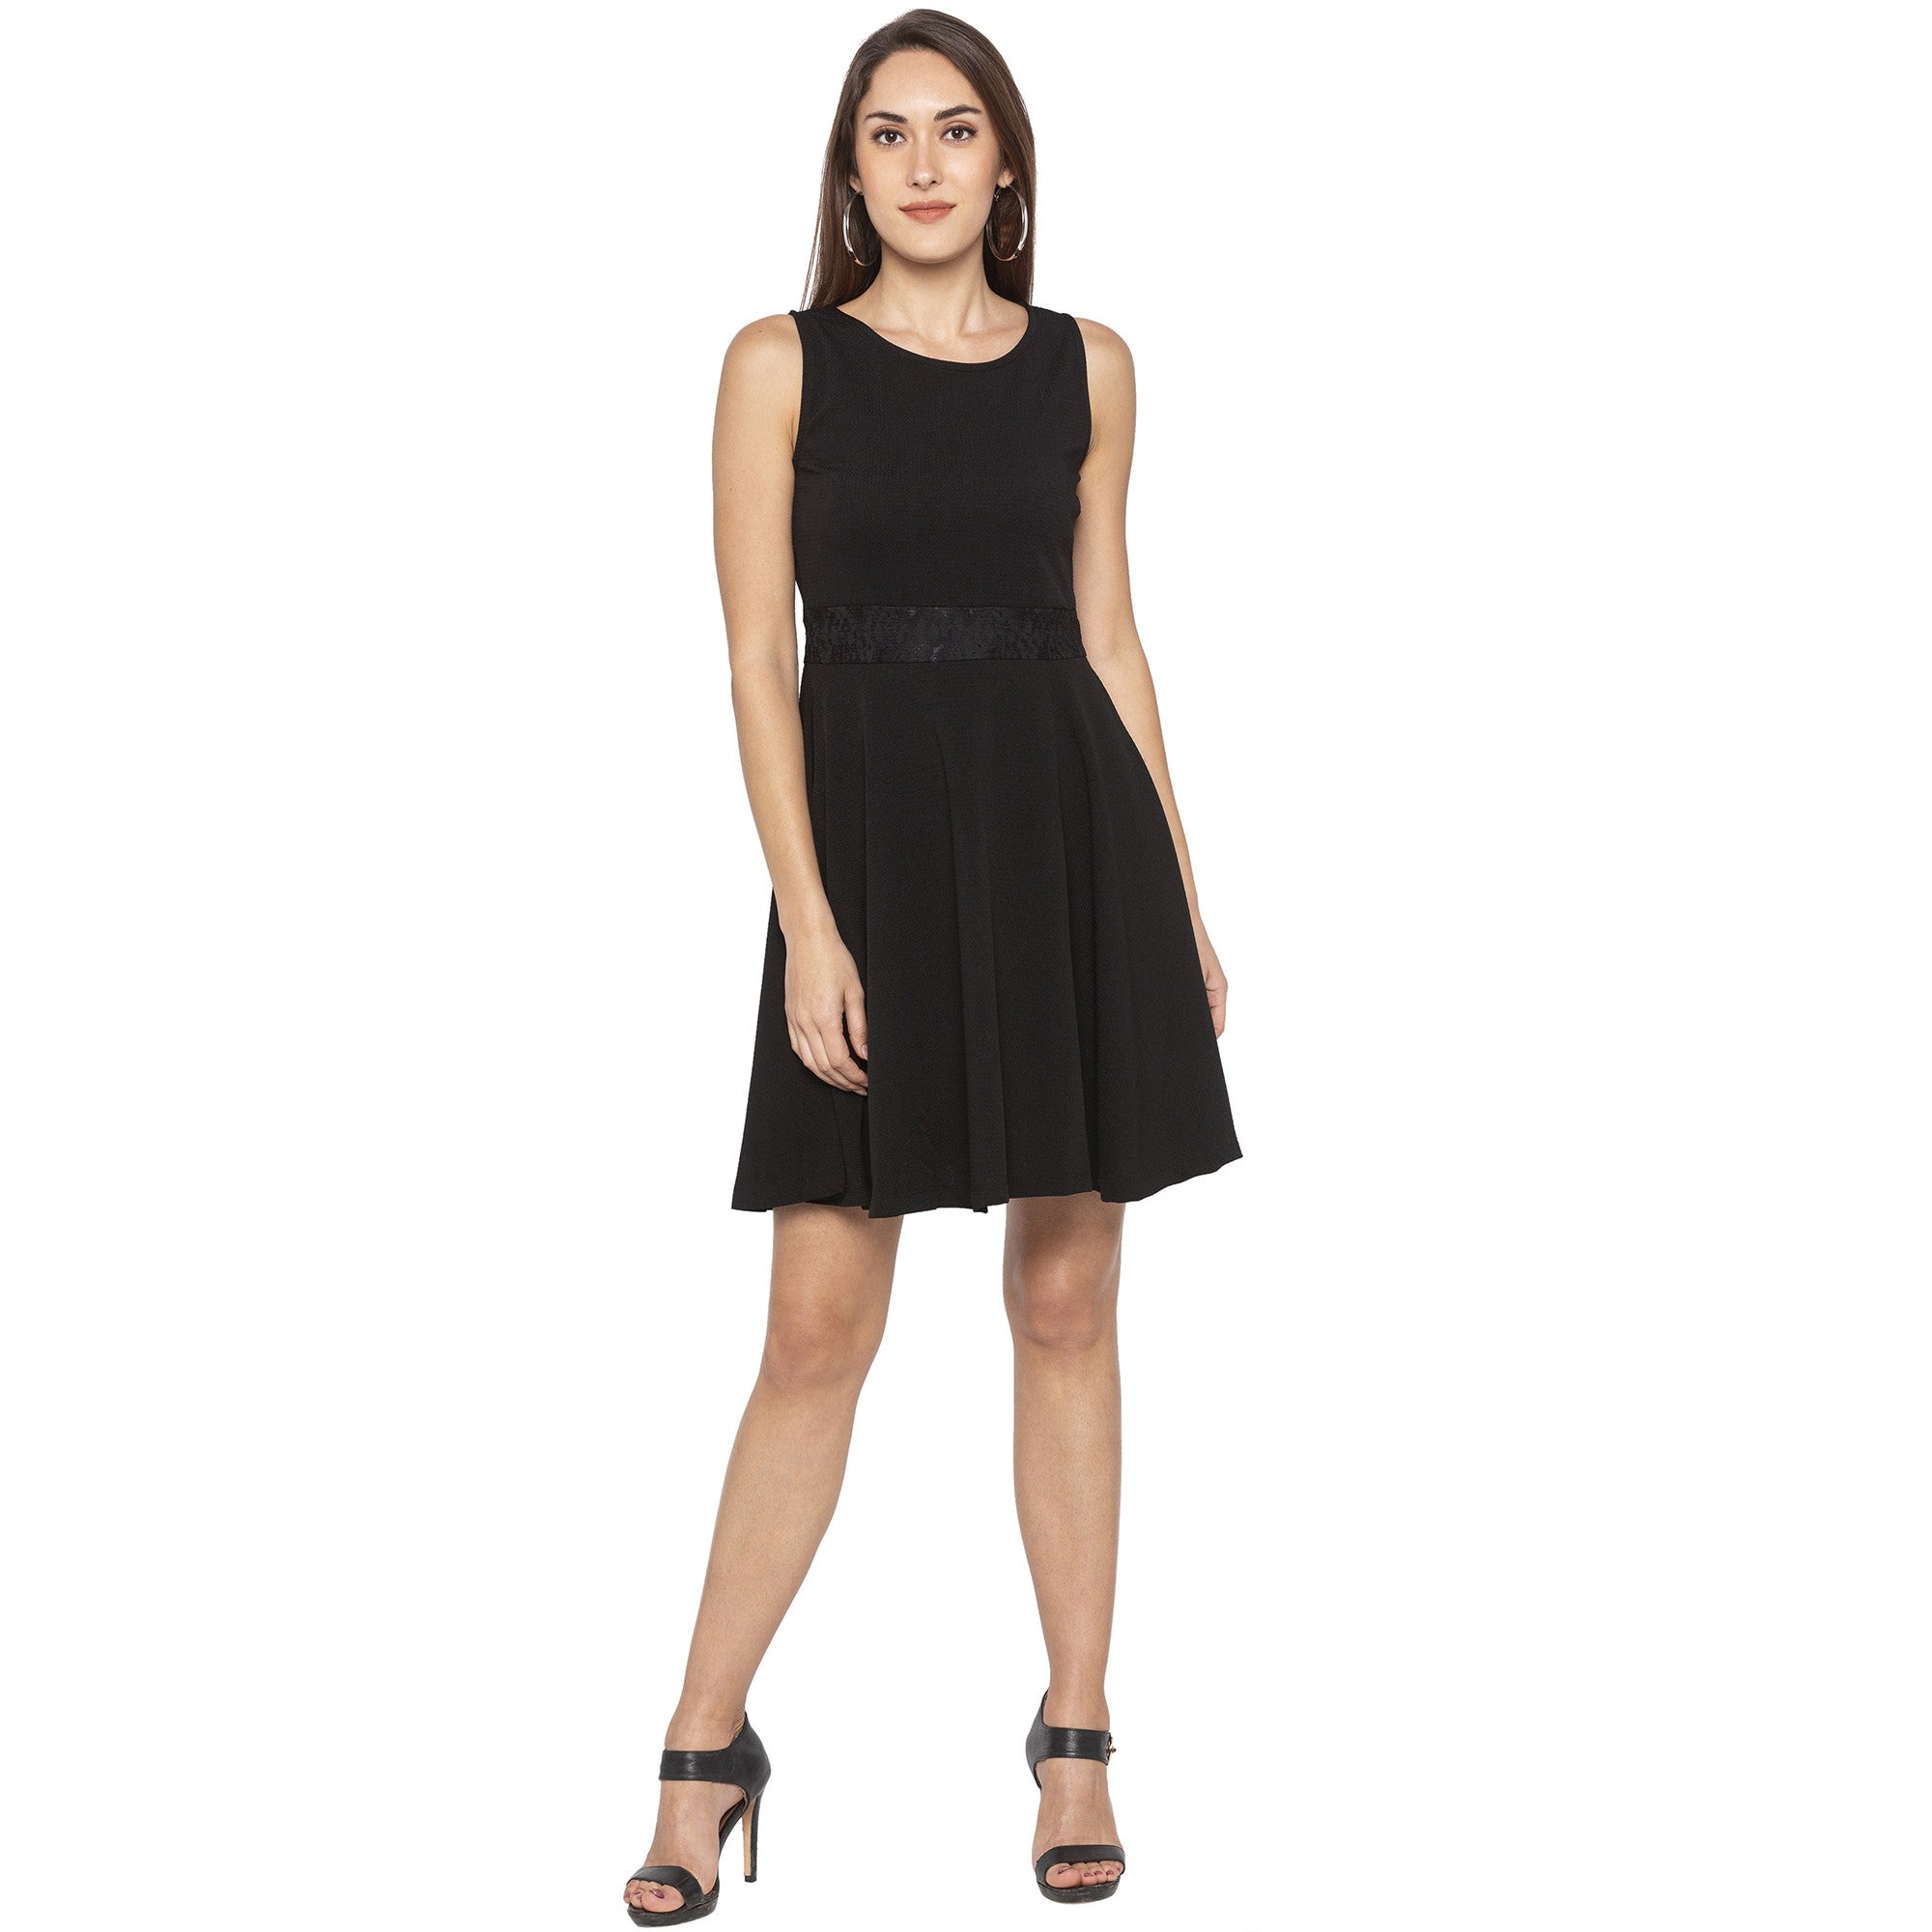 Casual Black Color Solid Fit and Flare Dress-1